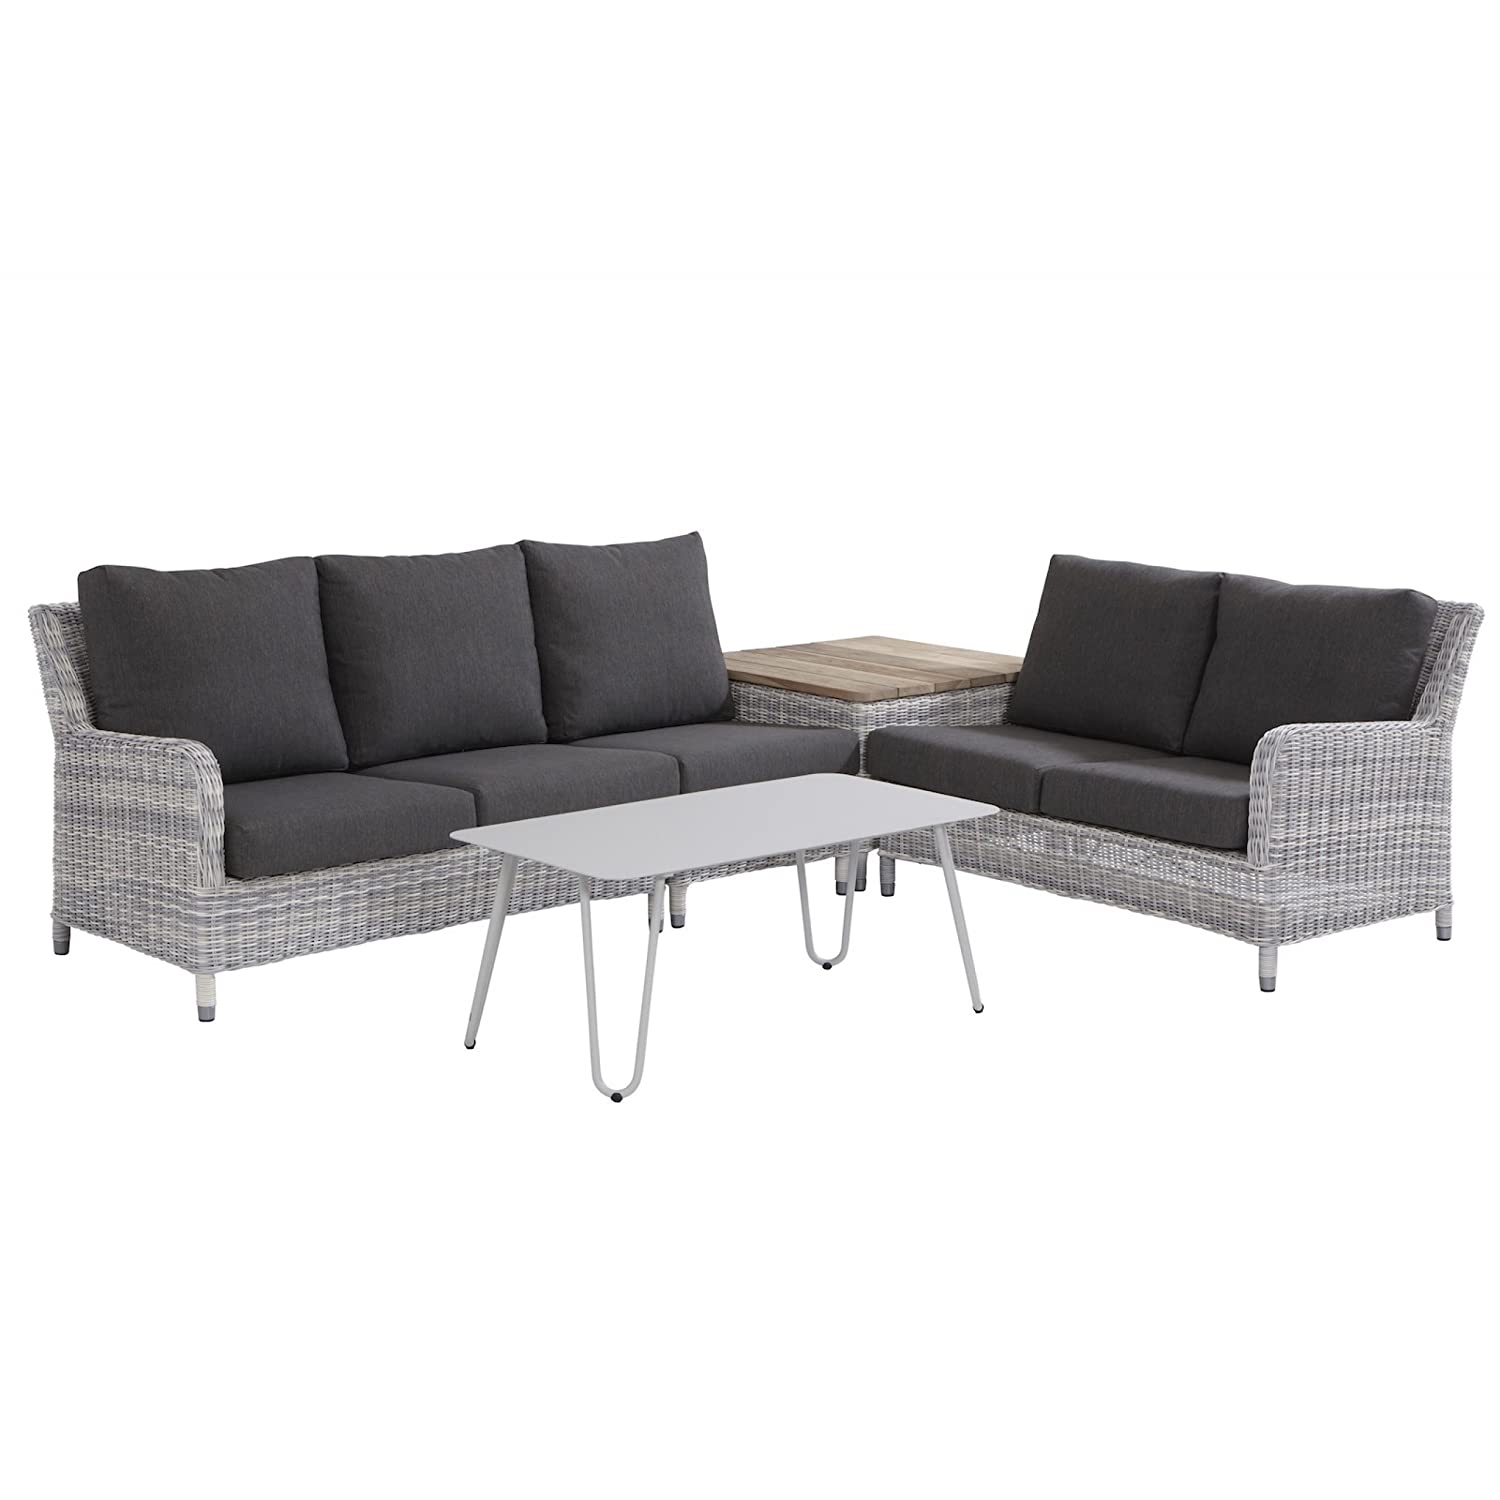 4Seasons Outdoor Indigo 5-teilige Loungegruppe Polyrattan Ice mit Cool Tisch